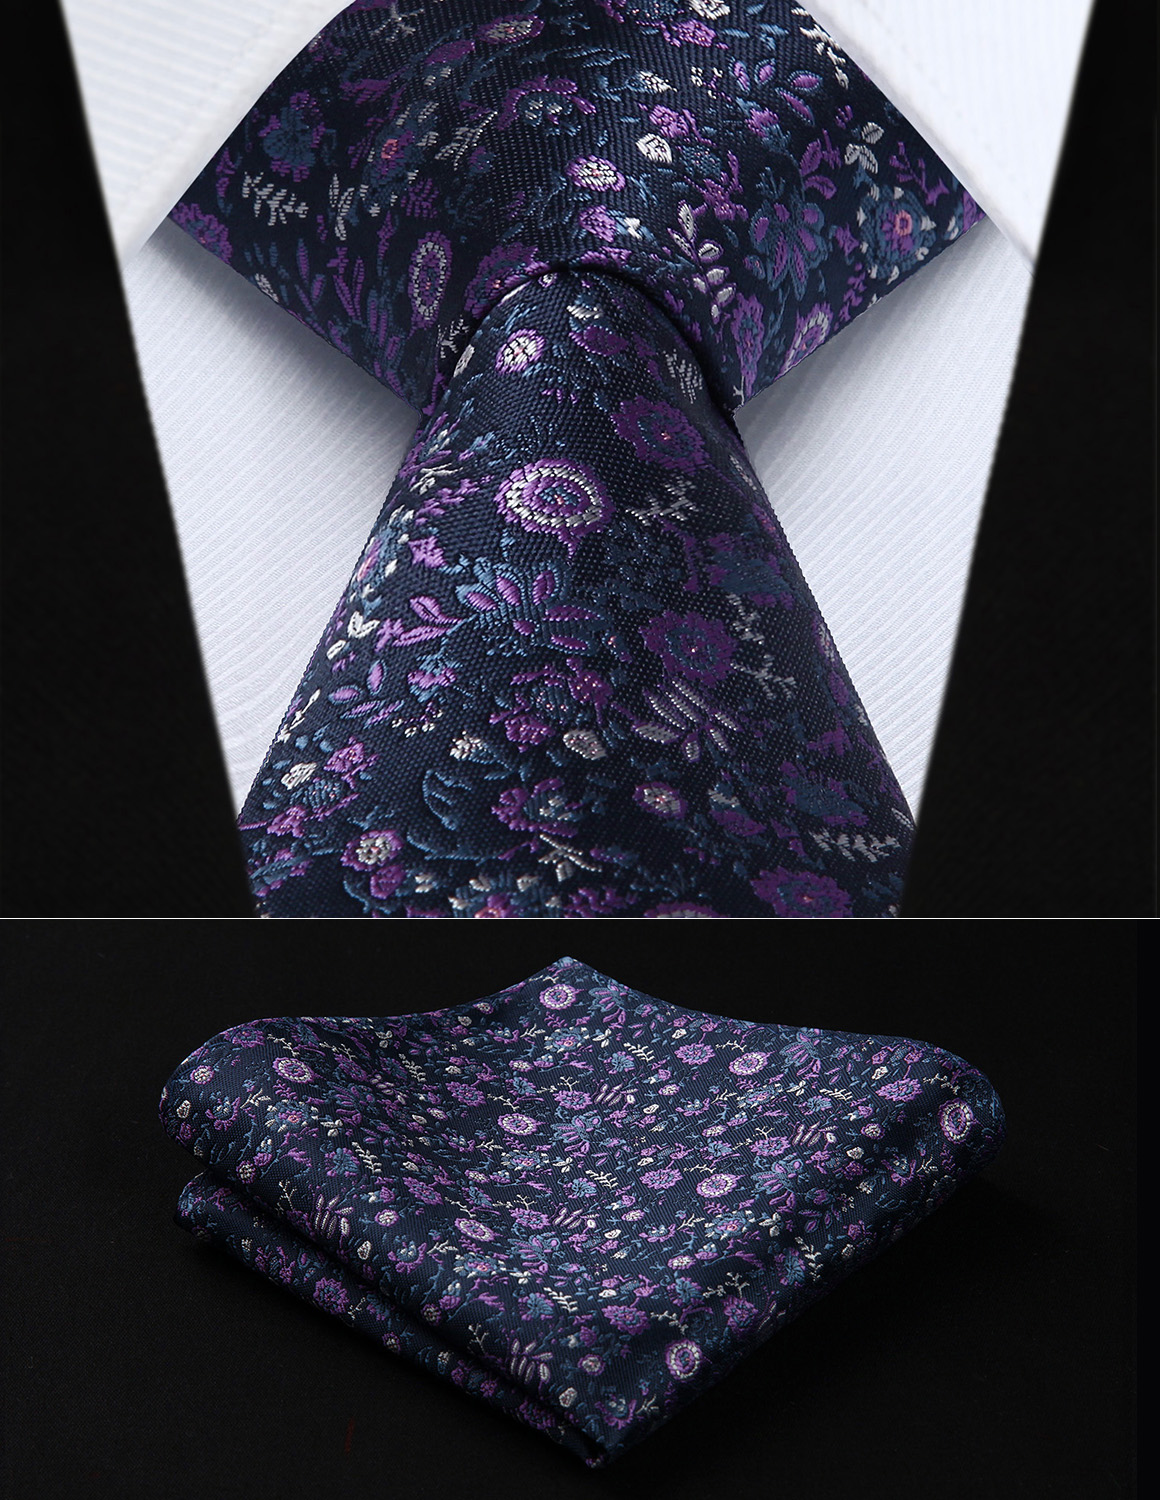 Party Wedding Classic Pocket Square Tie TF704P8S Navy Blue Purple Floral 3.4